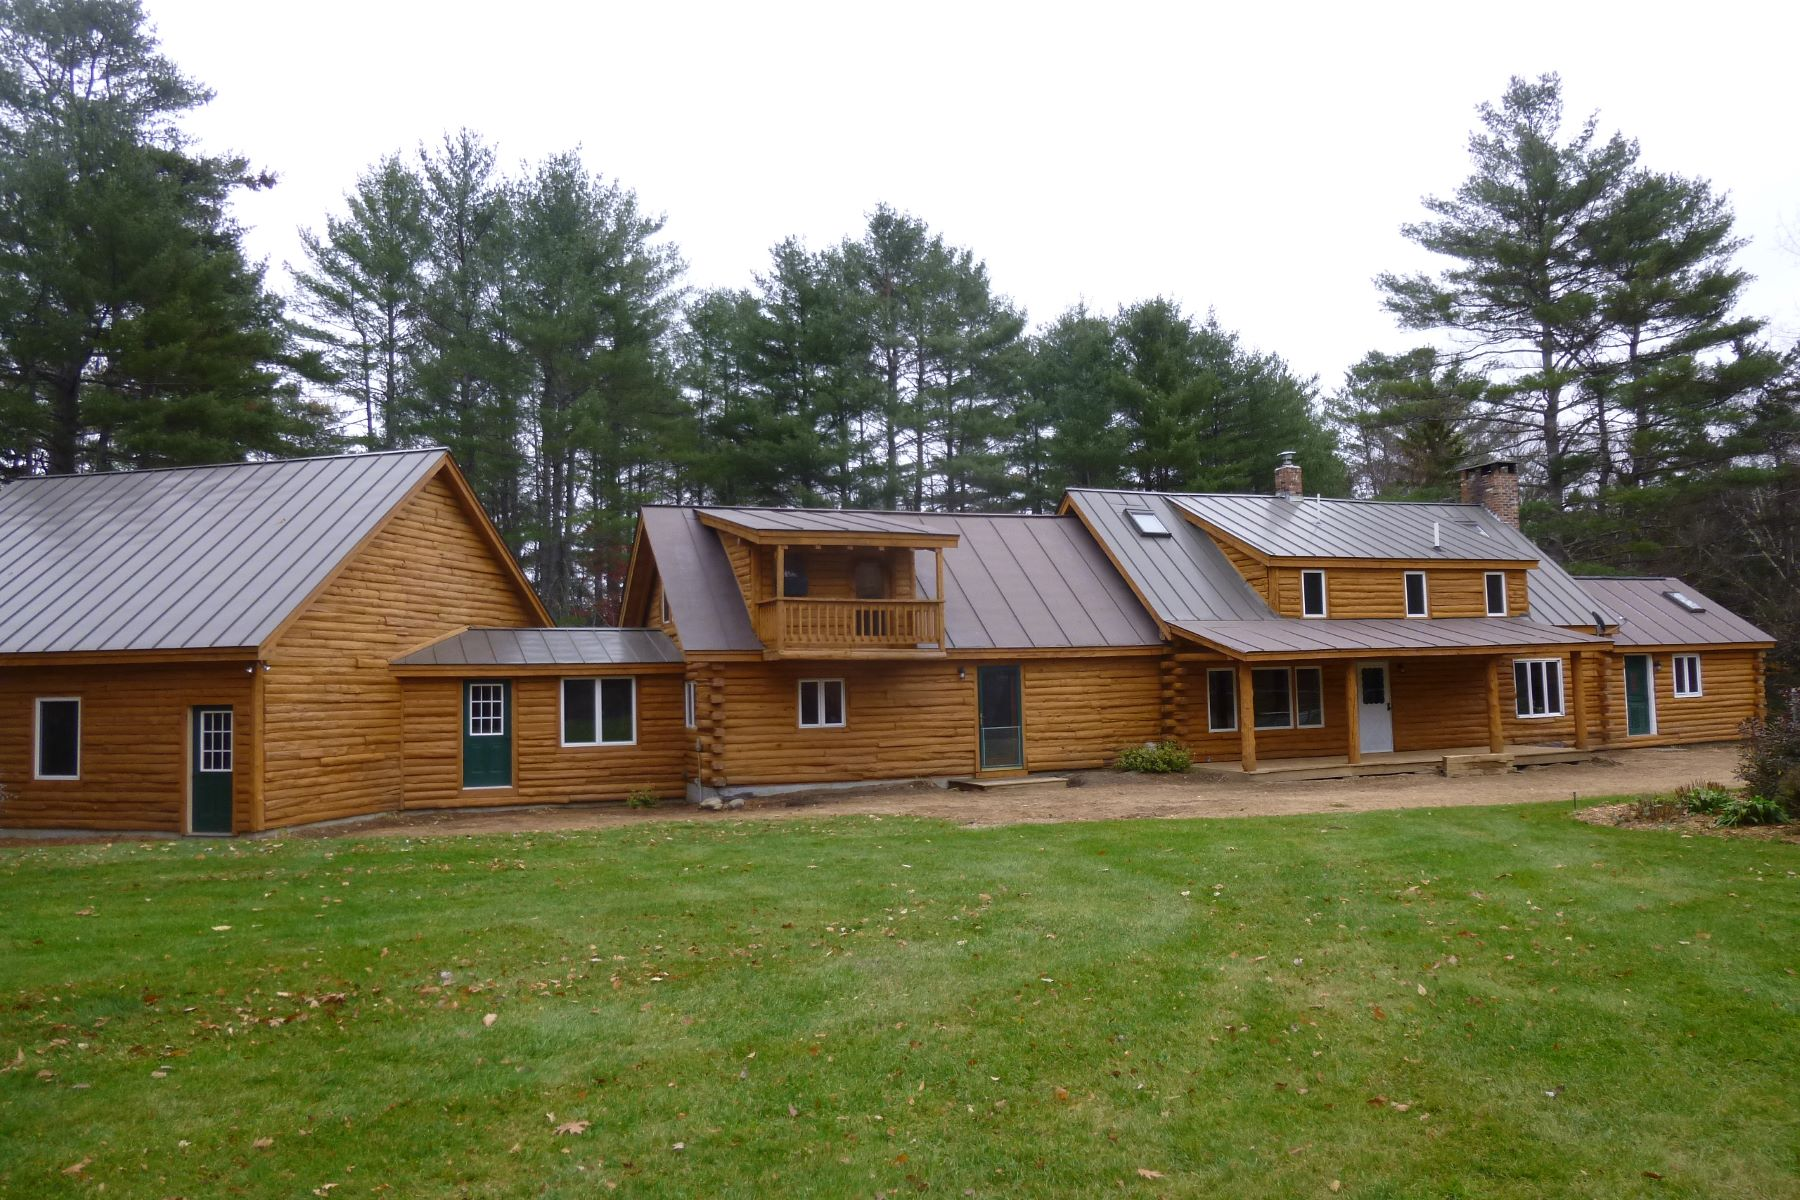 Single Family Home for Sale at 1431 Chelsea Road, Bradford 1431 Chelsea Rd Bradford, Vermont 05033 United States